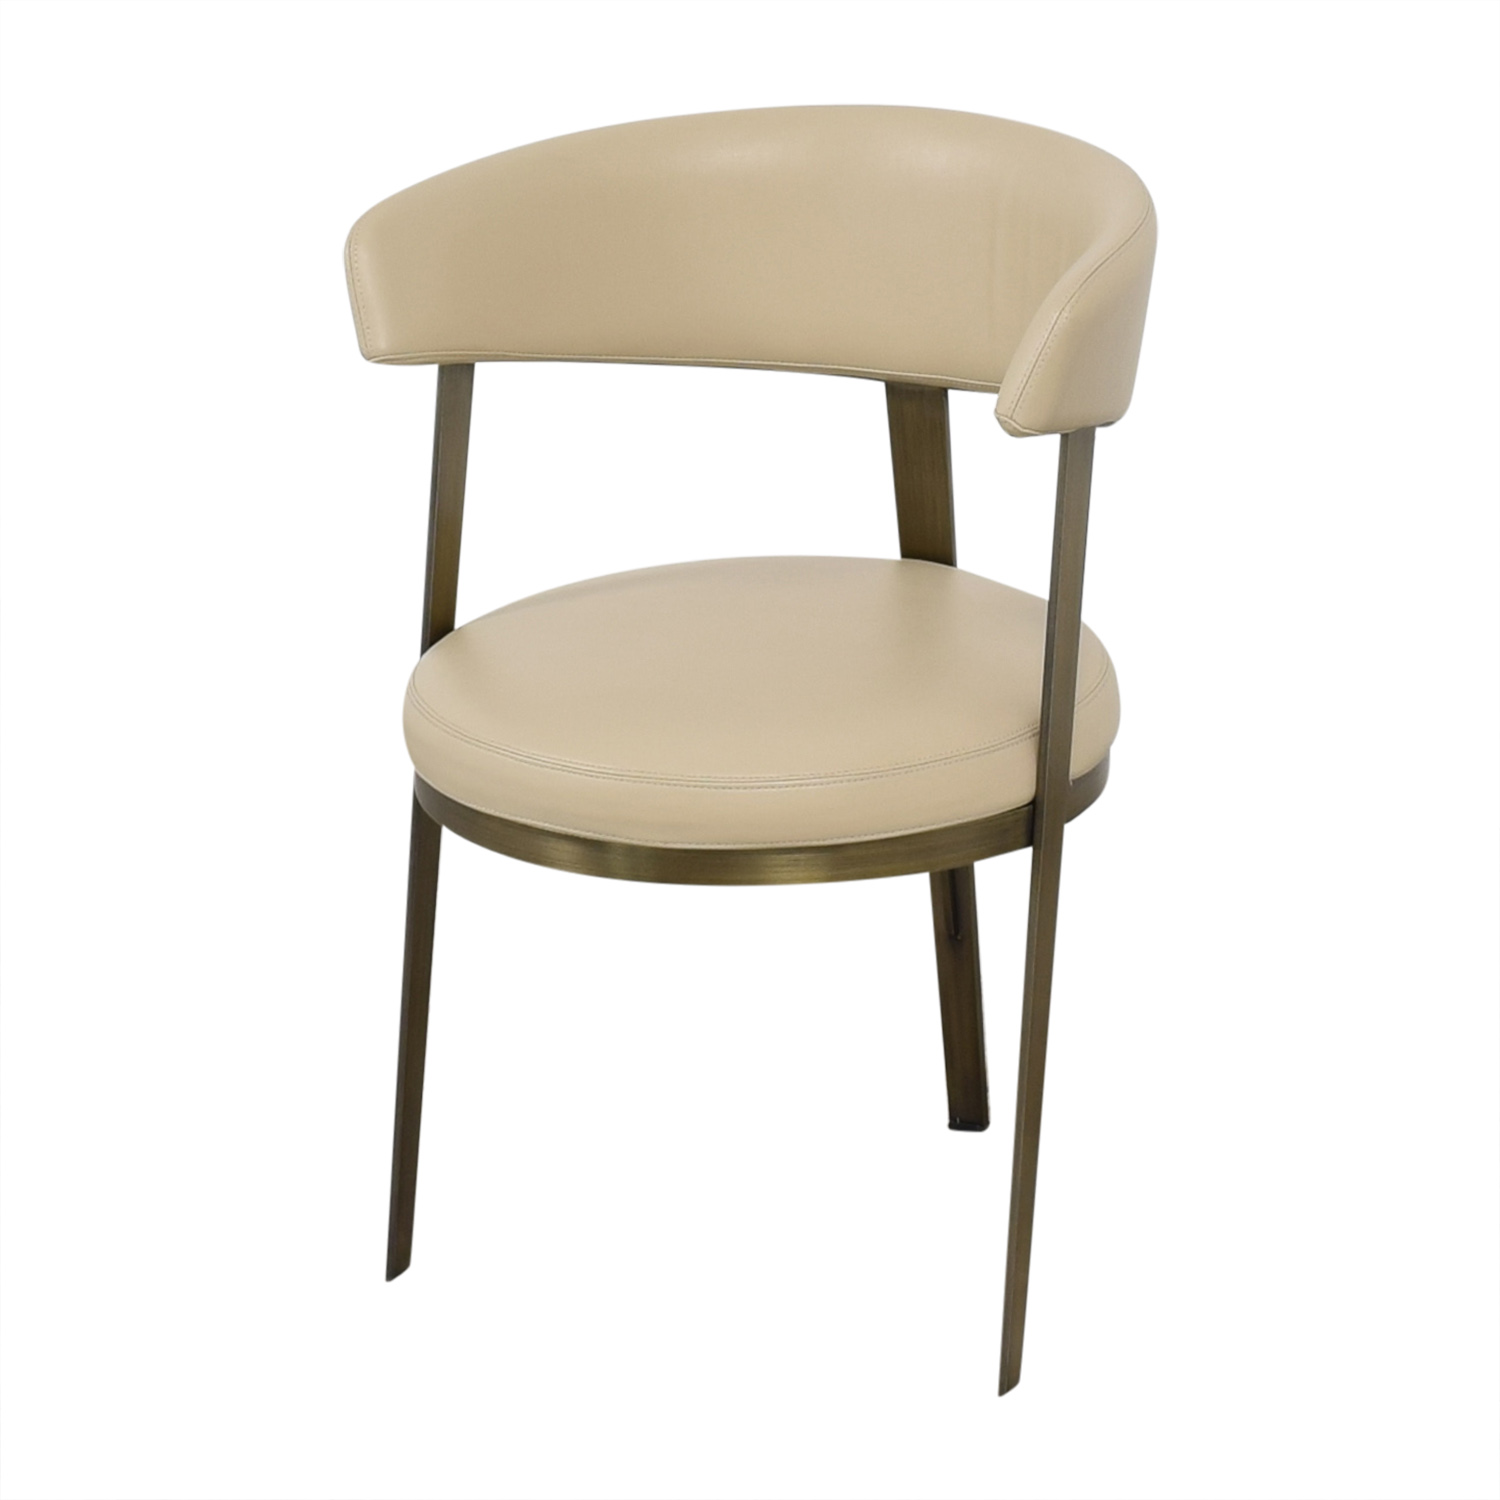 Interlude Home Interlude Home Dining Chairs